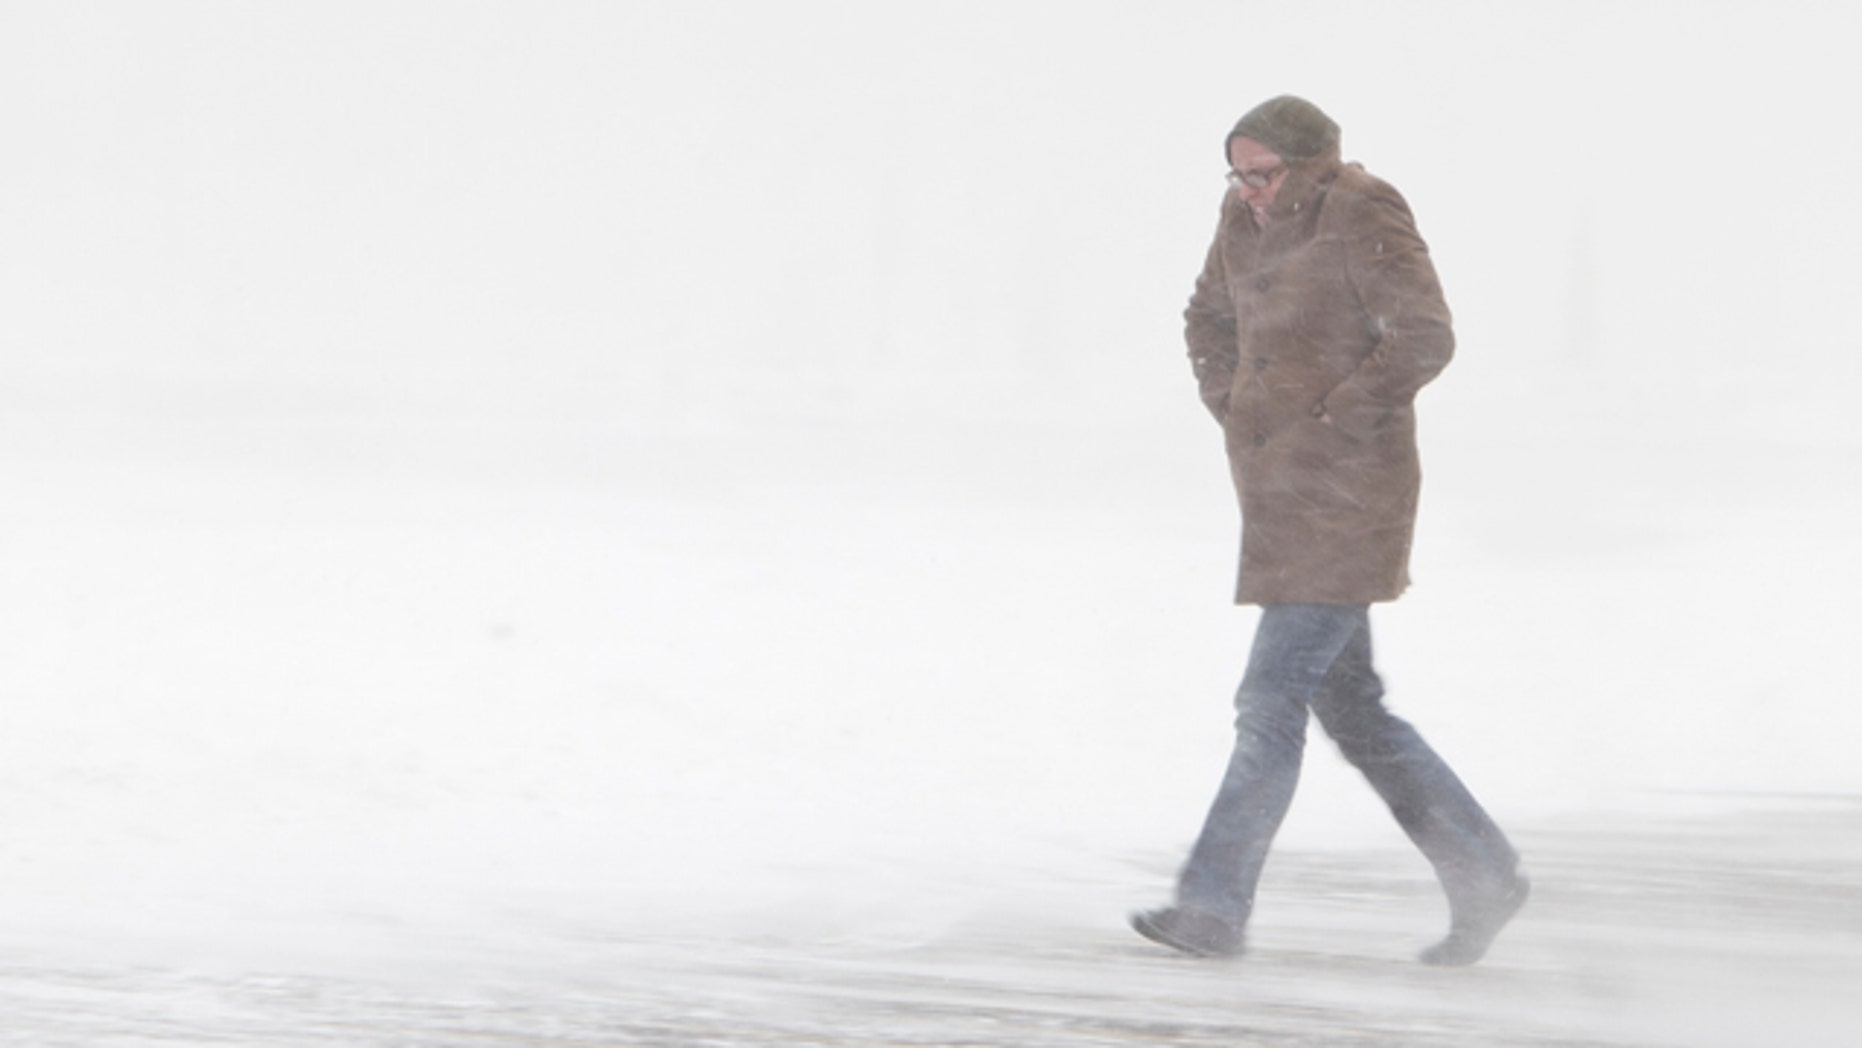 A shopper walks in the parking lot of a store amid blowing snow, in Omaha, Neb.